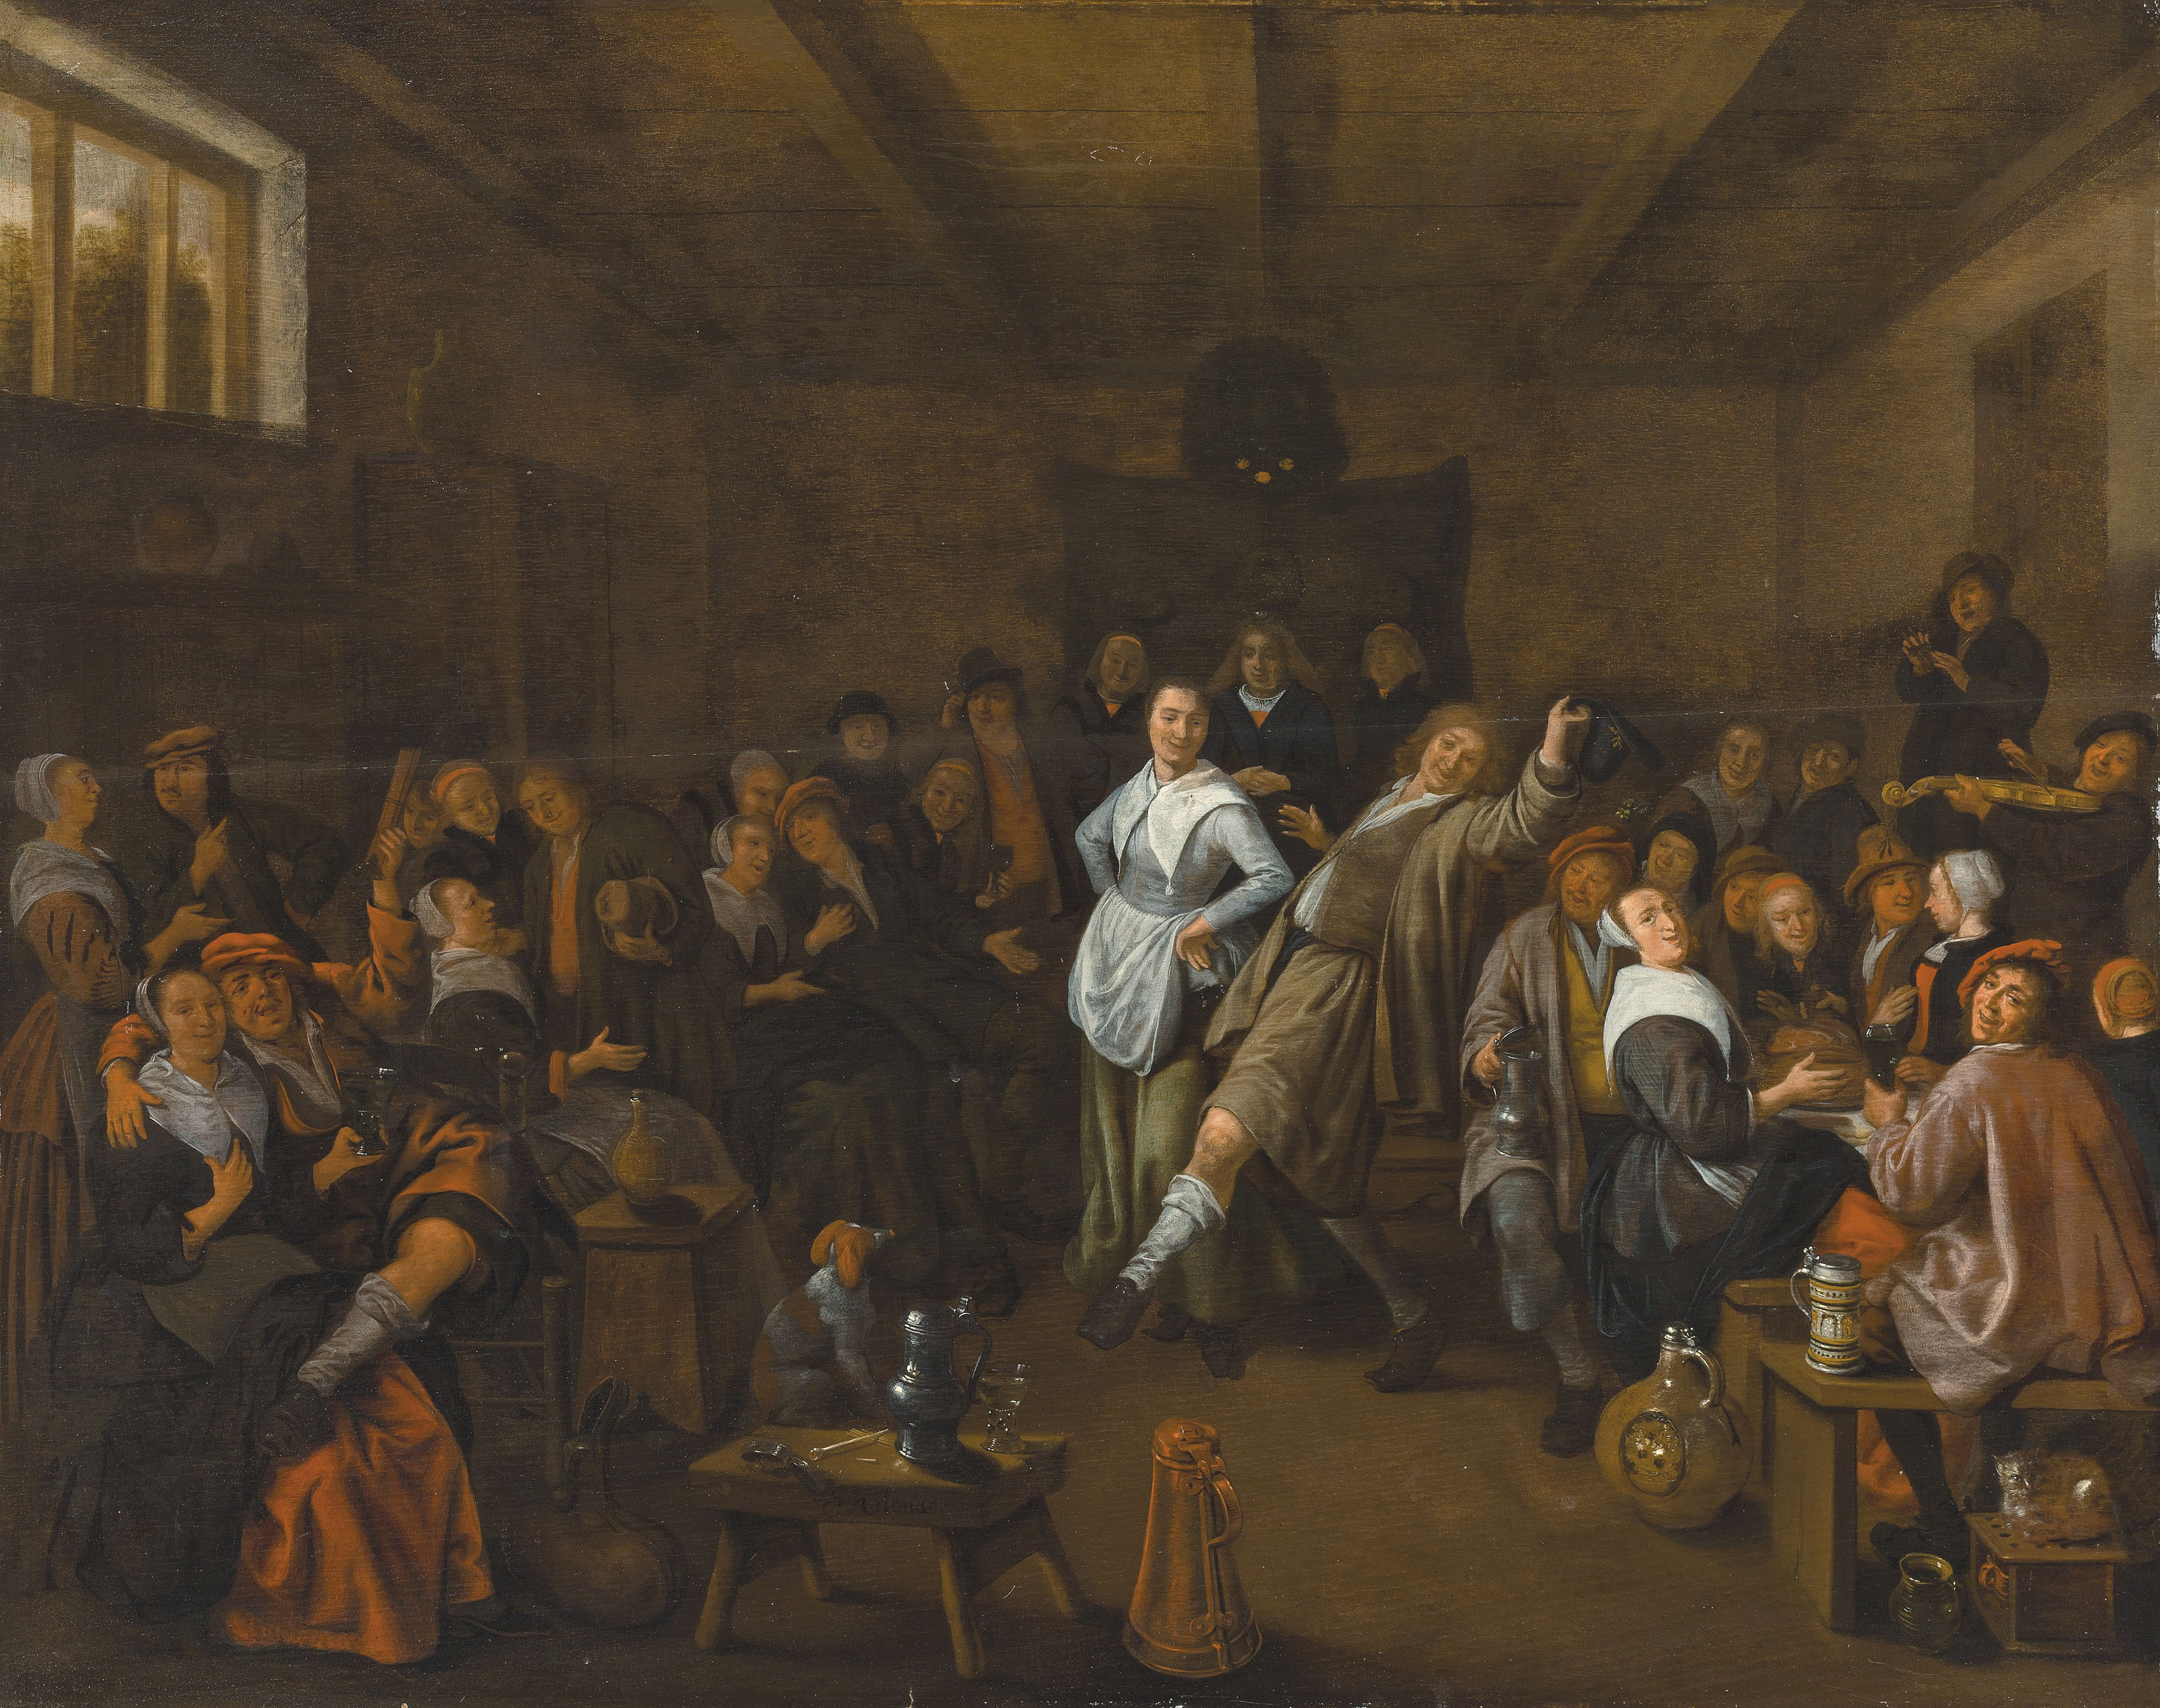 A tavern interior with figures merrymaking and carousing